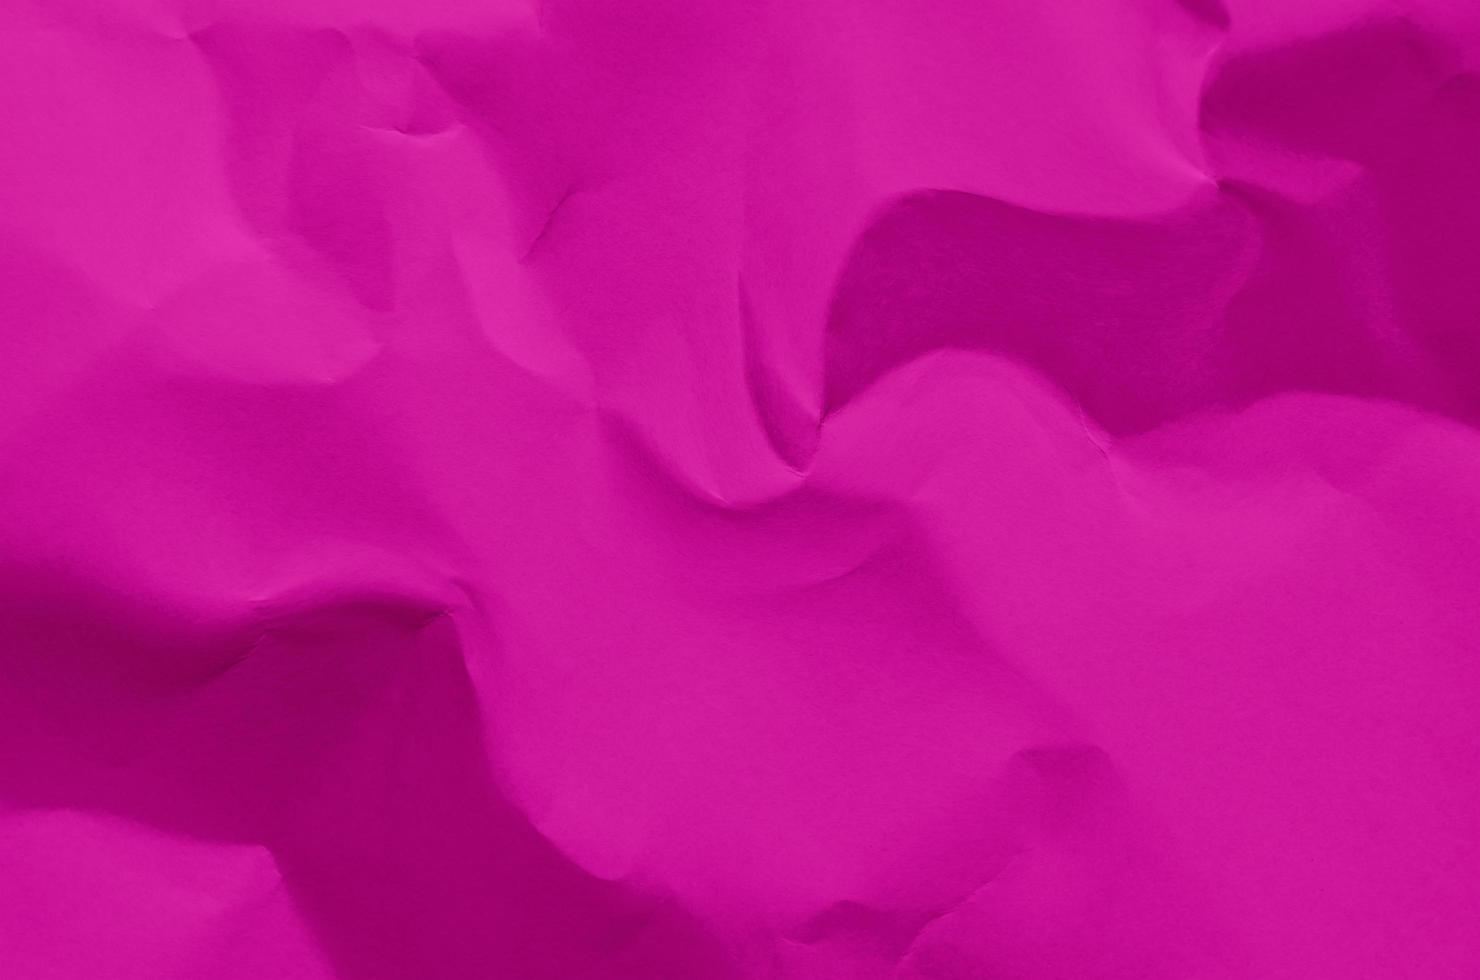 Pink background and wallpaper by crumpled paper texture. photo